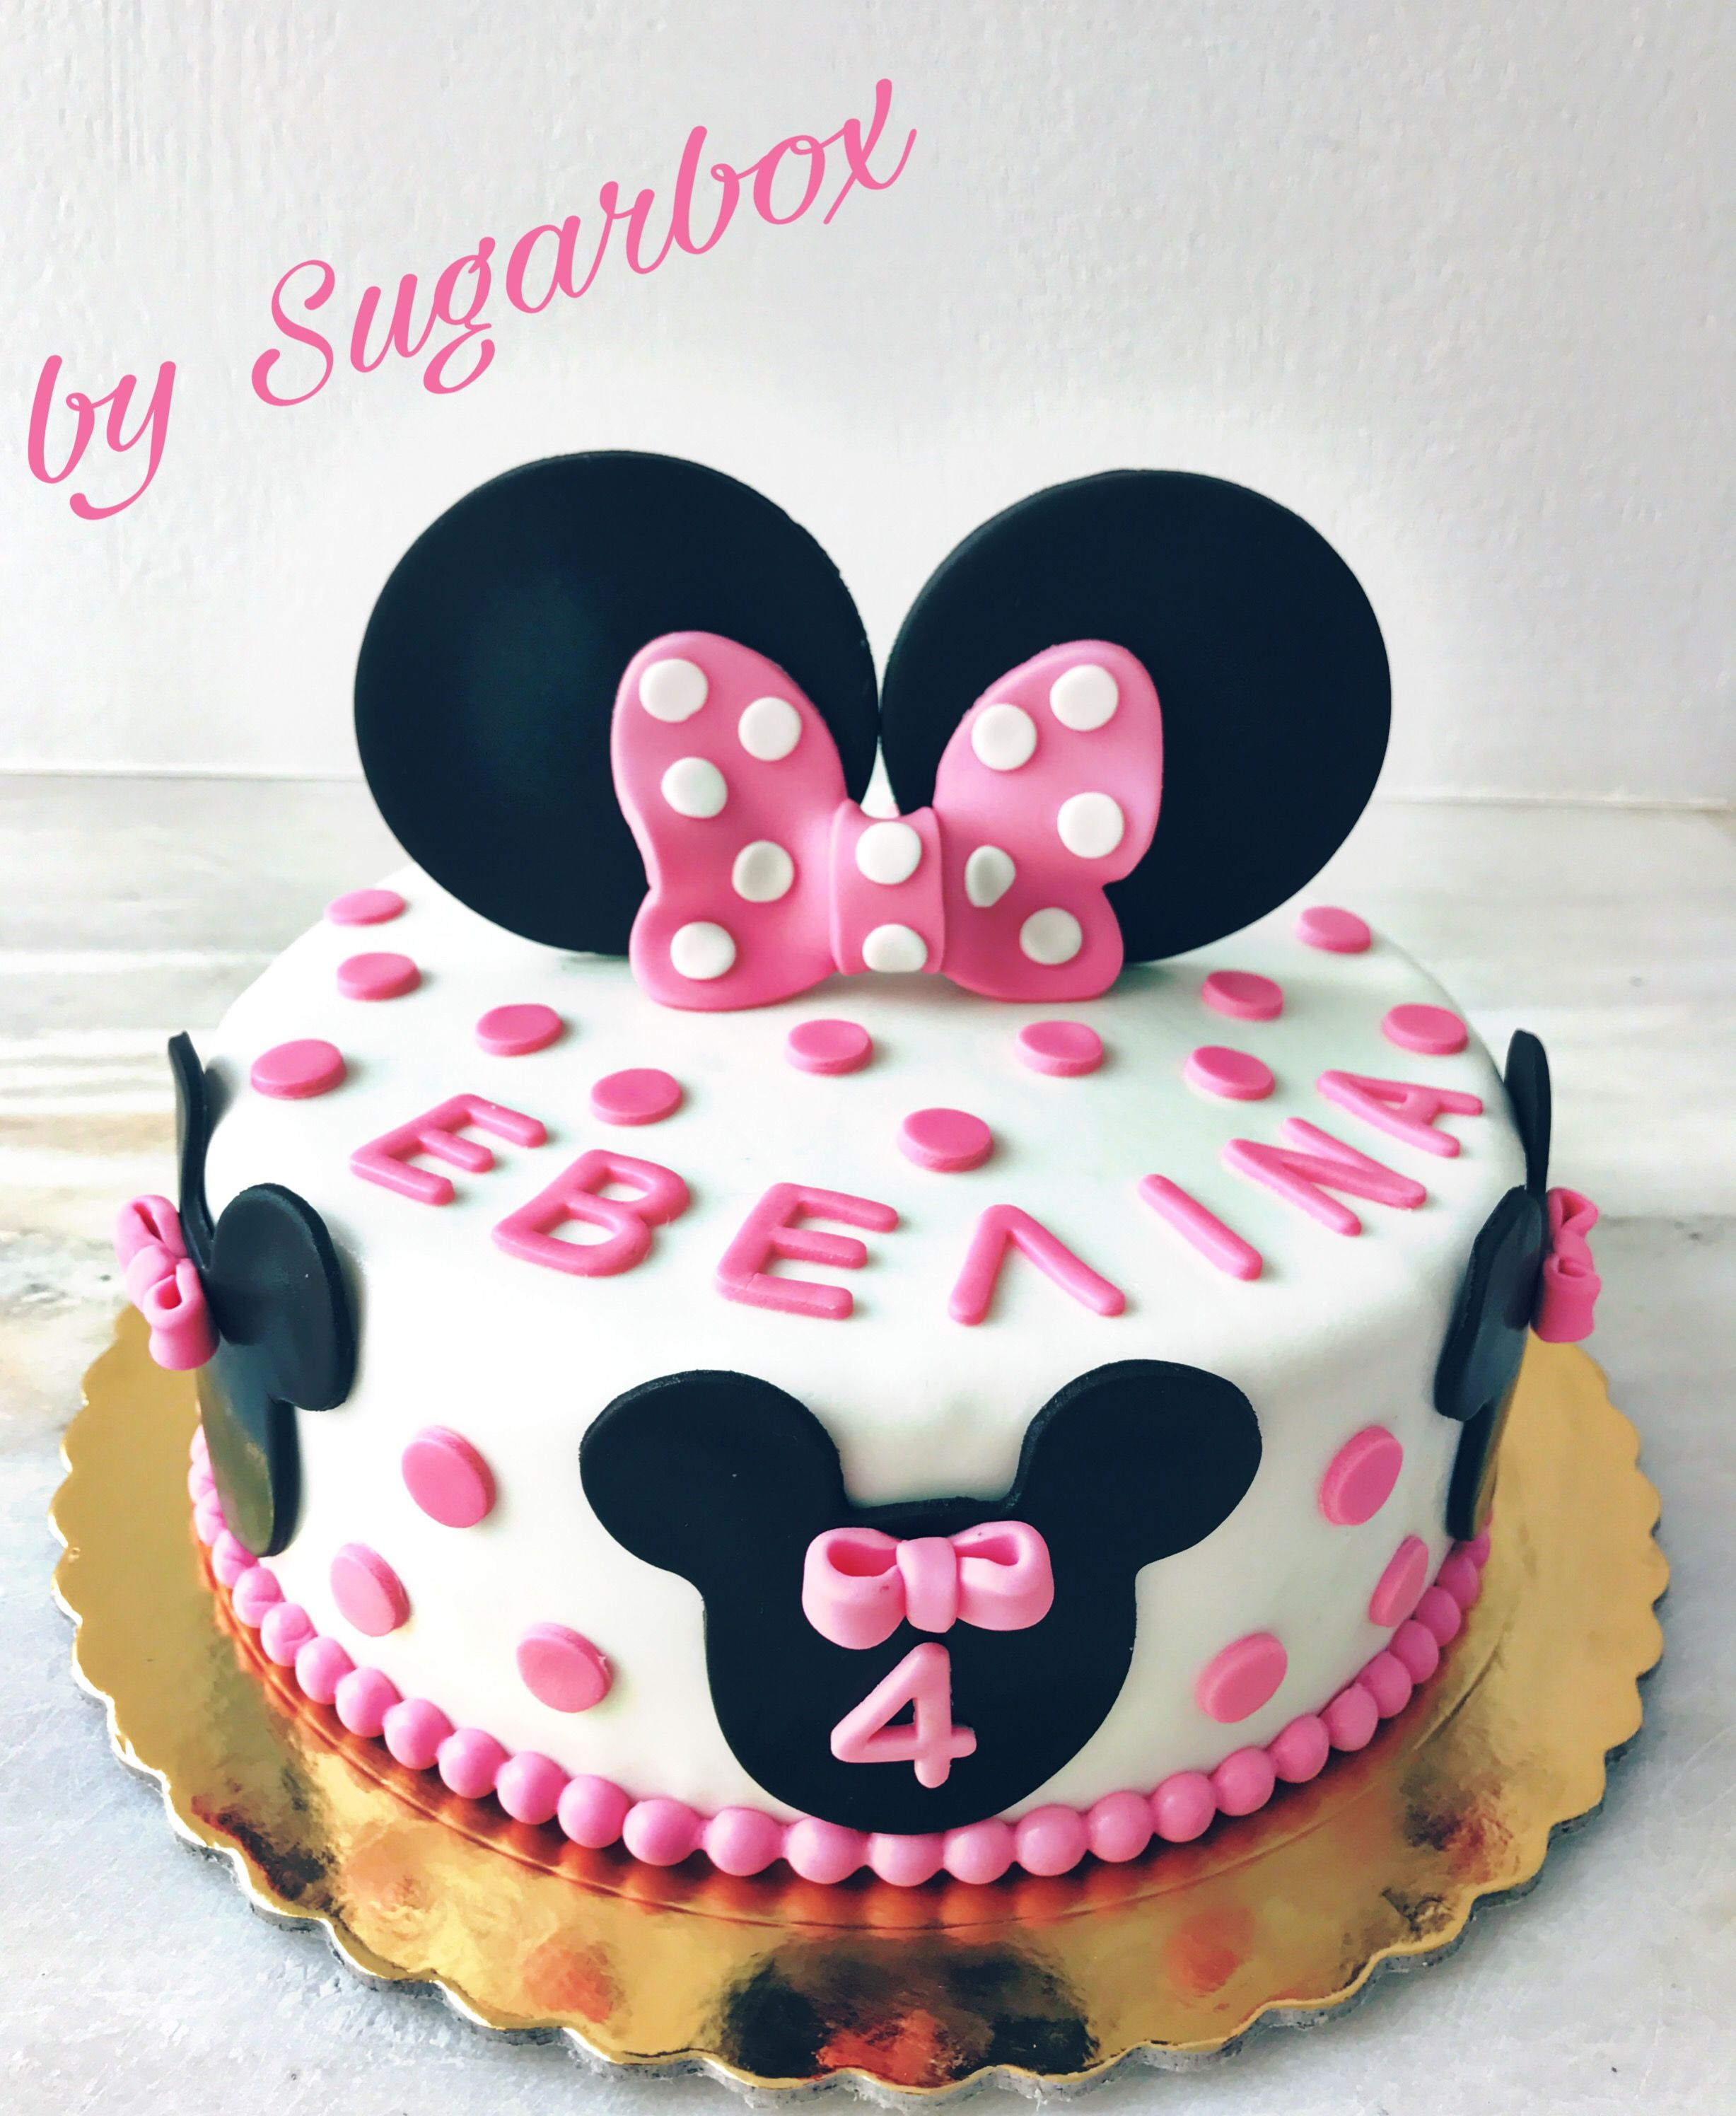 Pin Auf Sugarbox By Chara Party Cakes